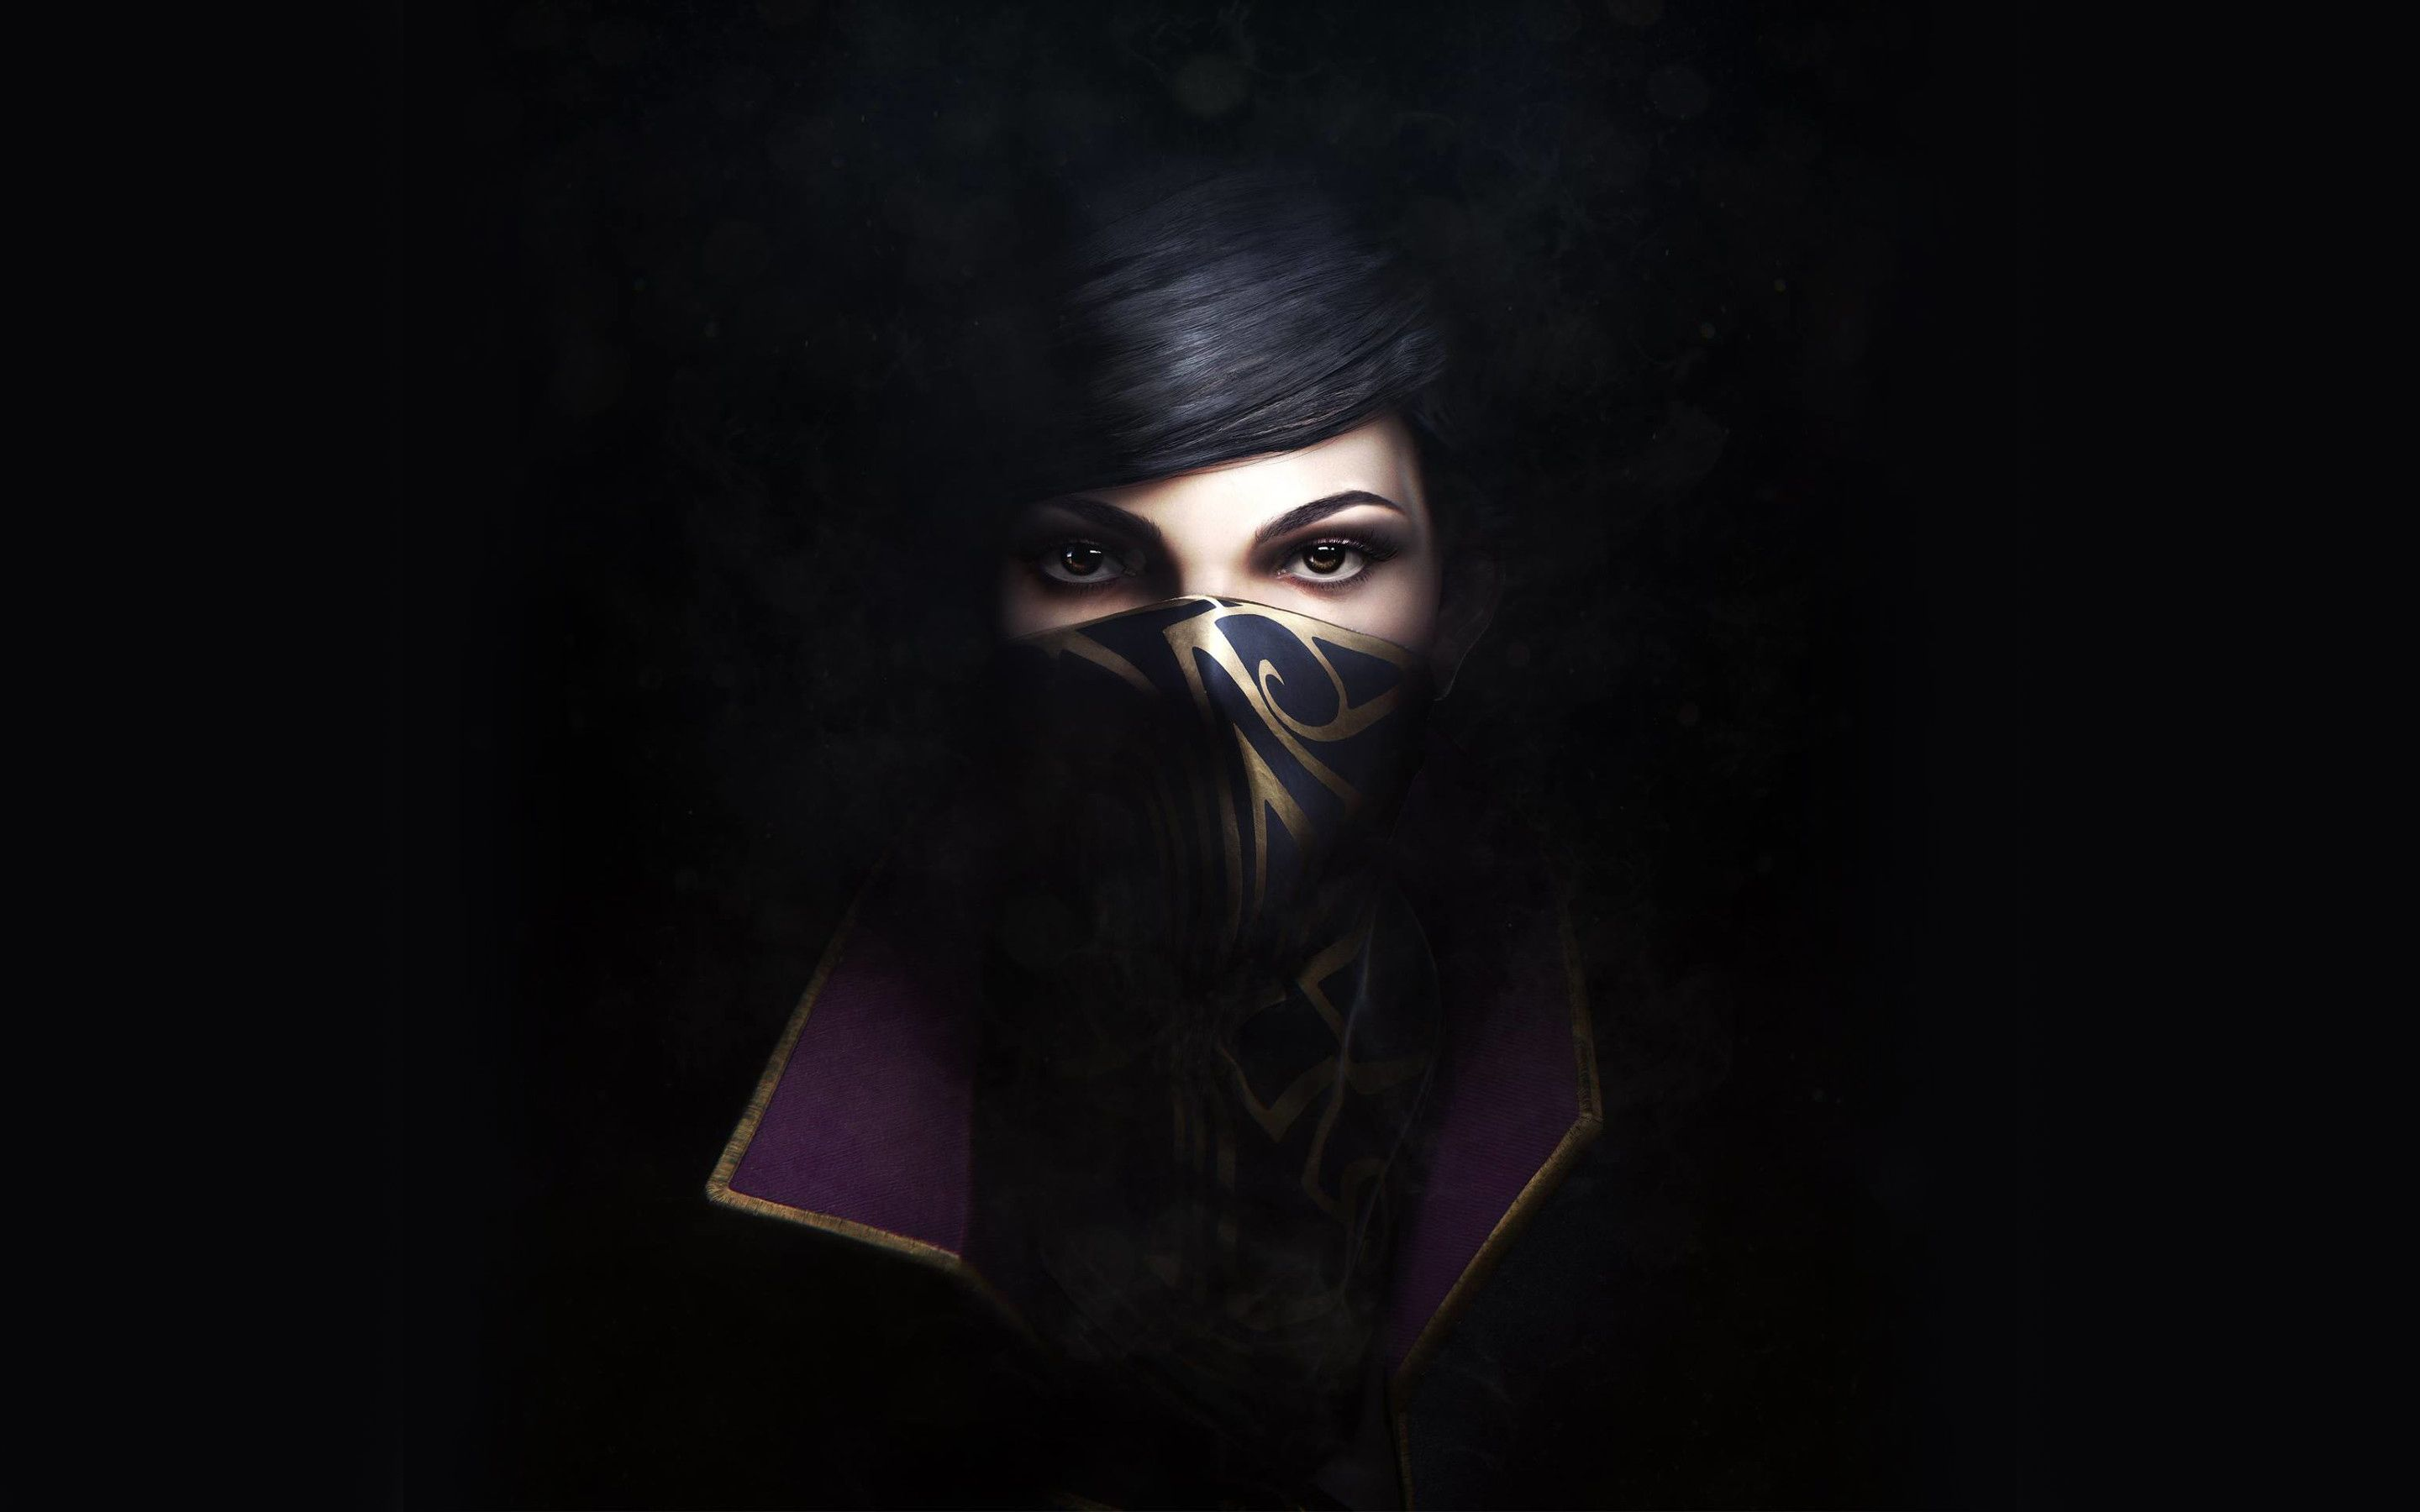 Dishonored 2 Emily Wallpapers Mobile Click Wallpapers Digital Wallpaper Dishonored Dishonored 2